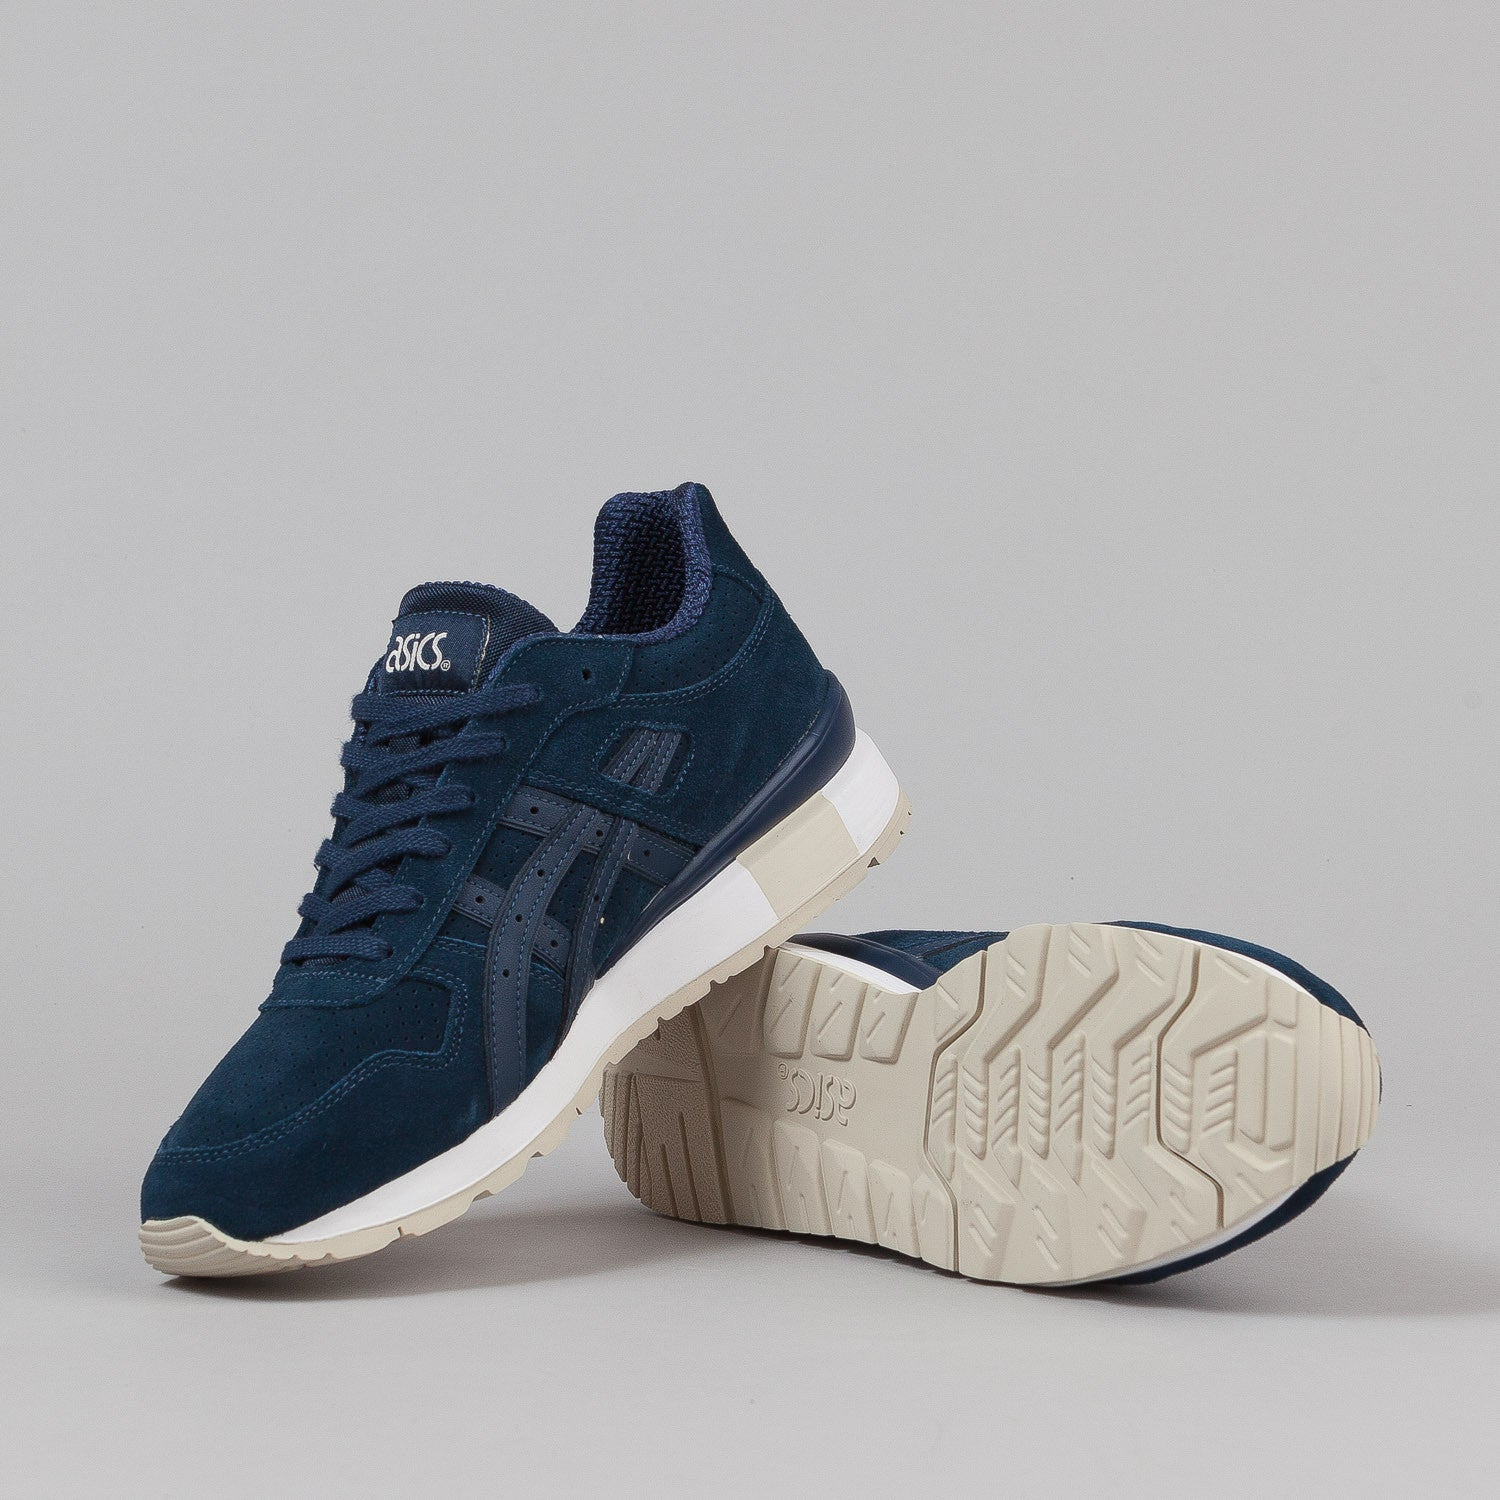 Asics GT II Shoes - Navy 'Suede Pack'